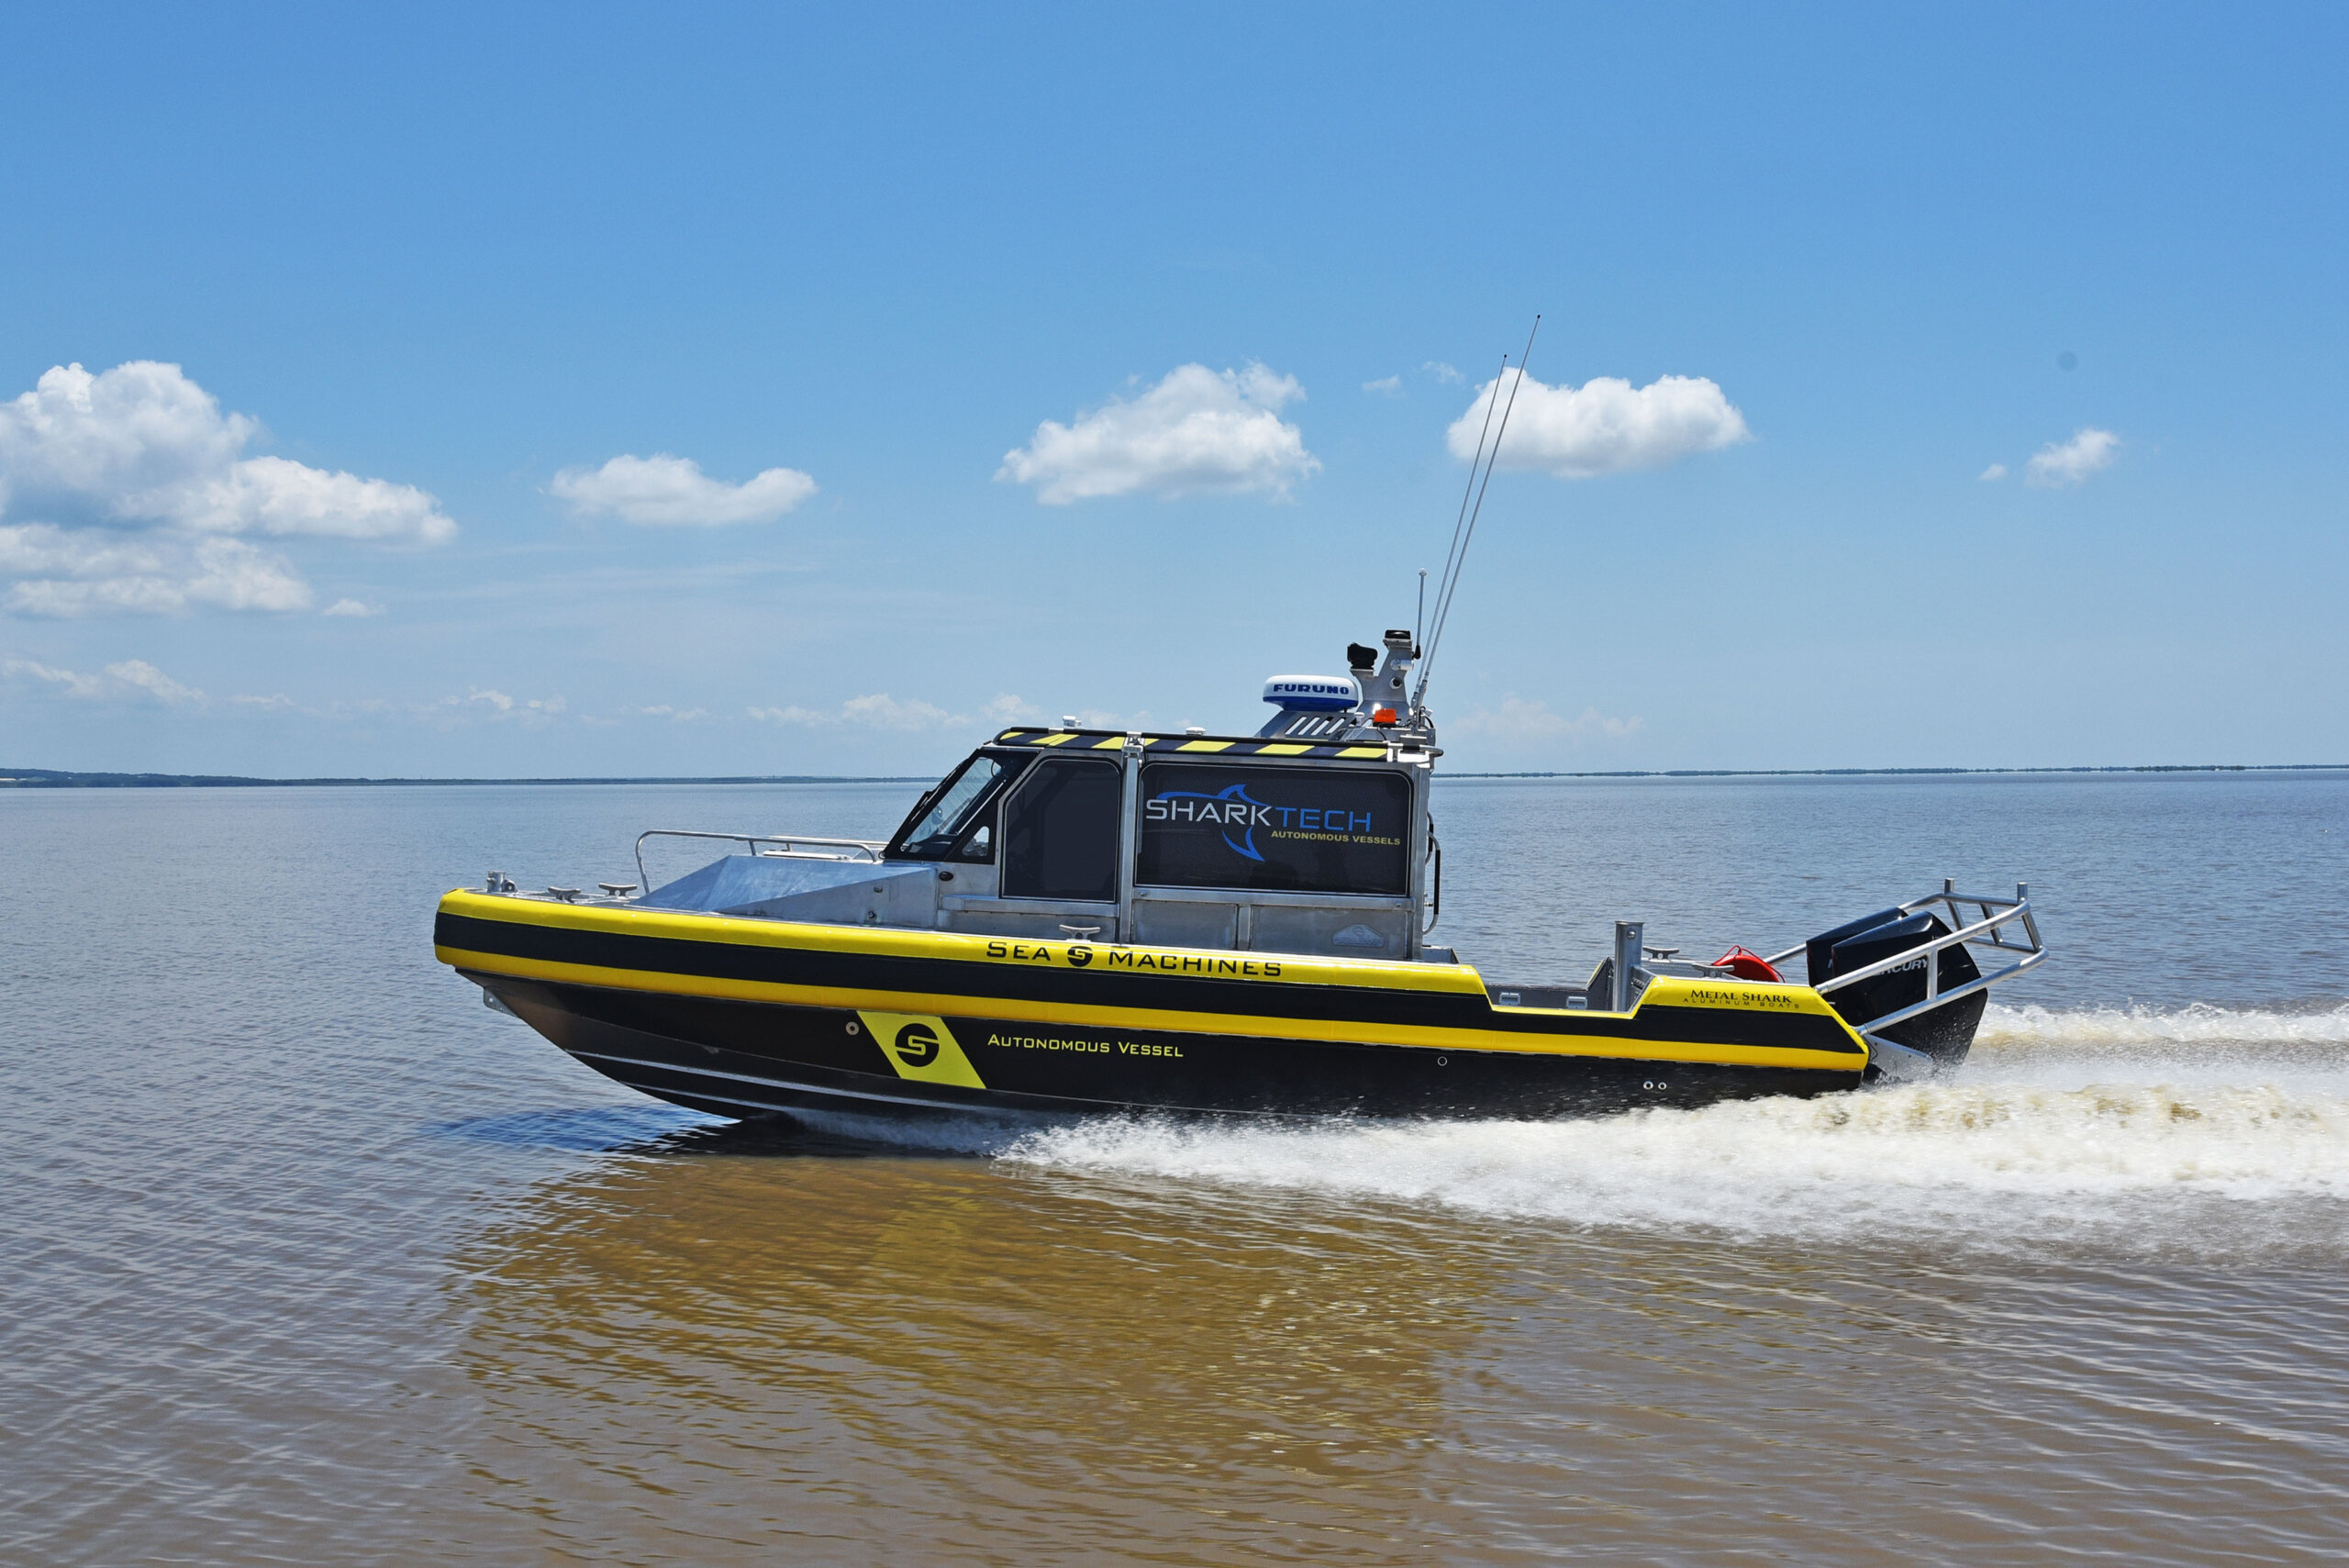 Metal Shark and Sea Machines Launch New Sharktech Autonomous Vessel and Announce Immediate Availability